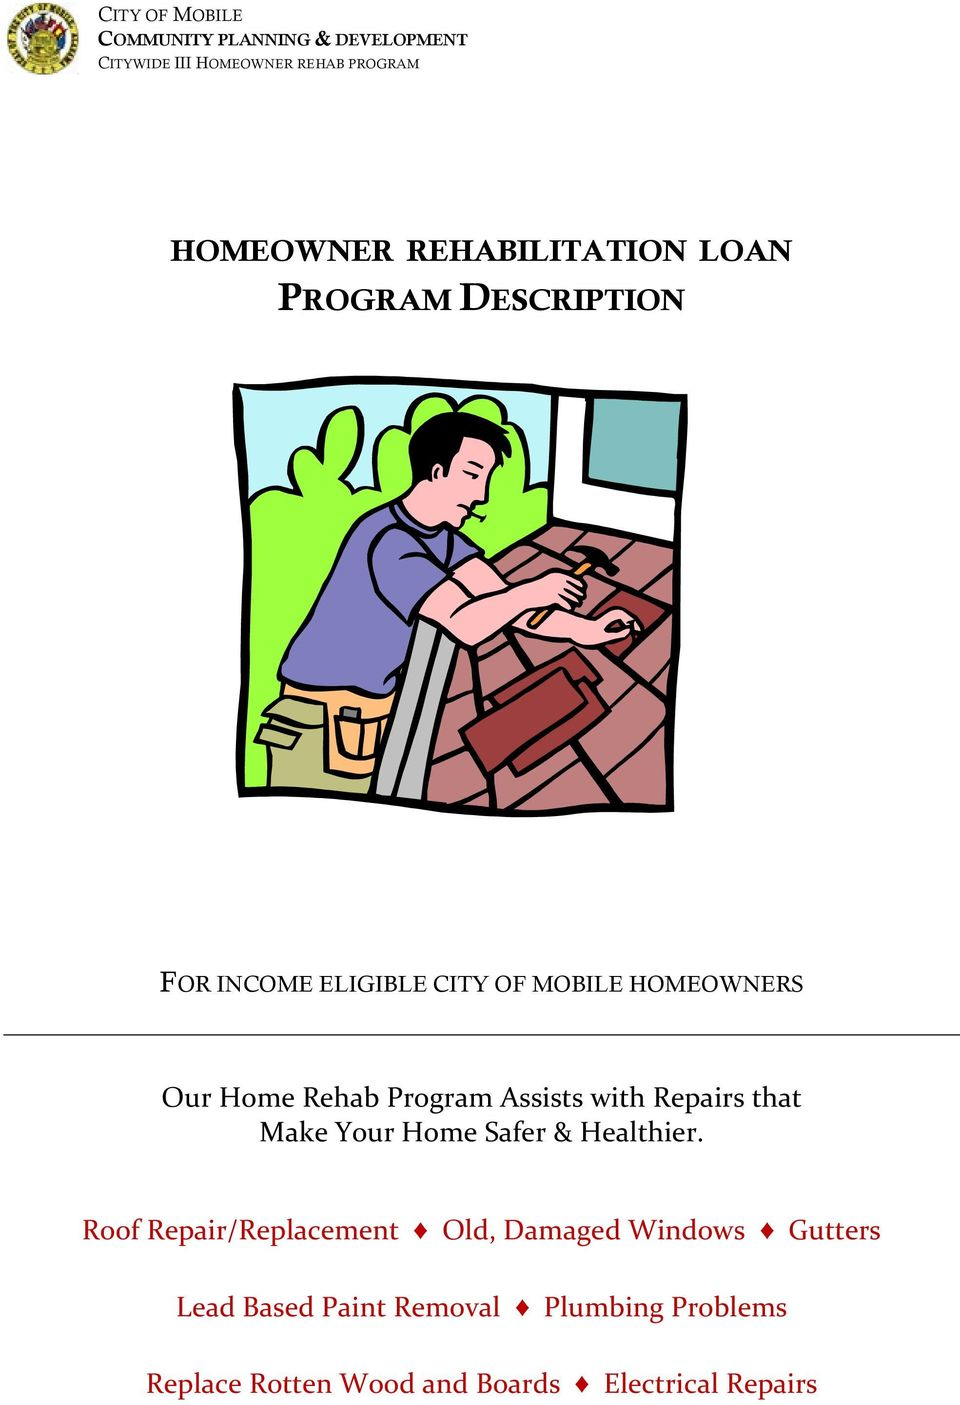 Program Assists with Repairs that Make Your Home Safer & Healthier.